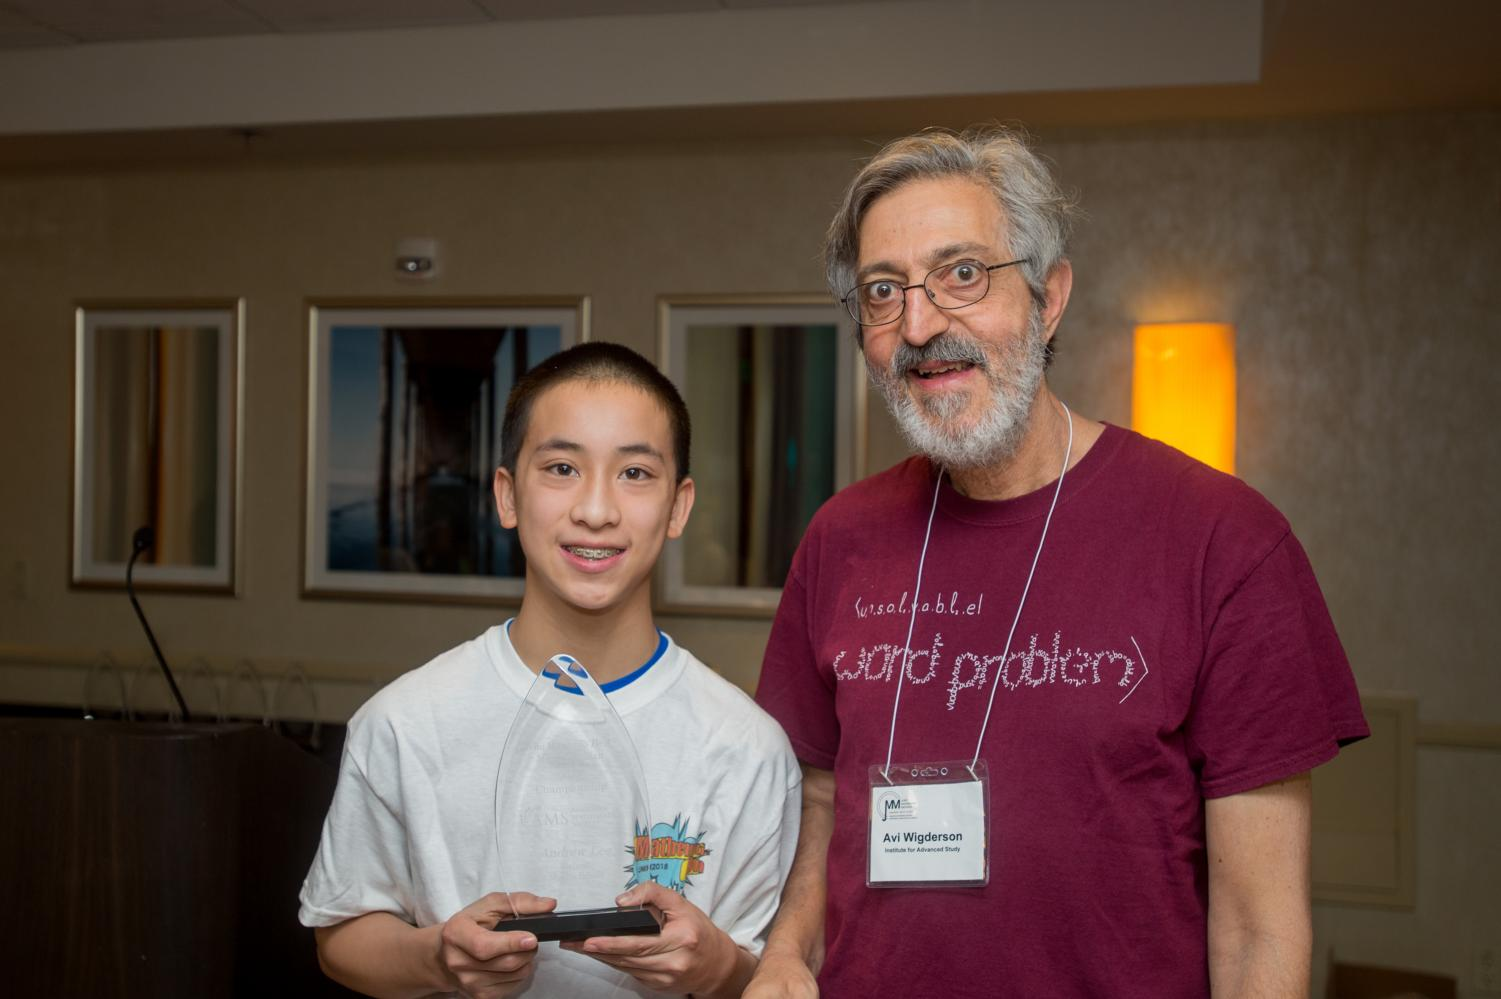 Andrew Lee holds his award proudly with Avi Wigderson from the Institute for Advanced Study at the 2018 Who Wants to be a Mathematician awards breakfast.